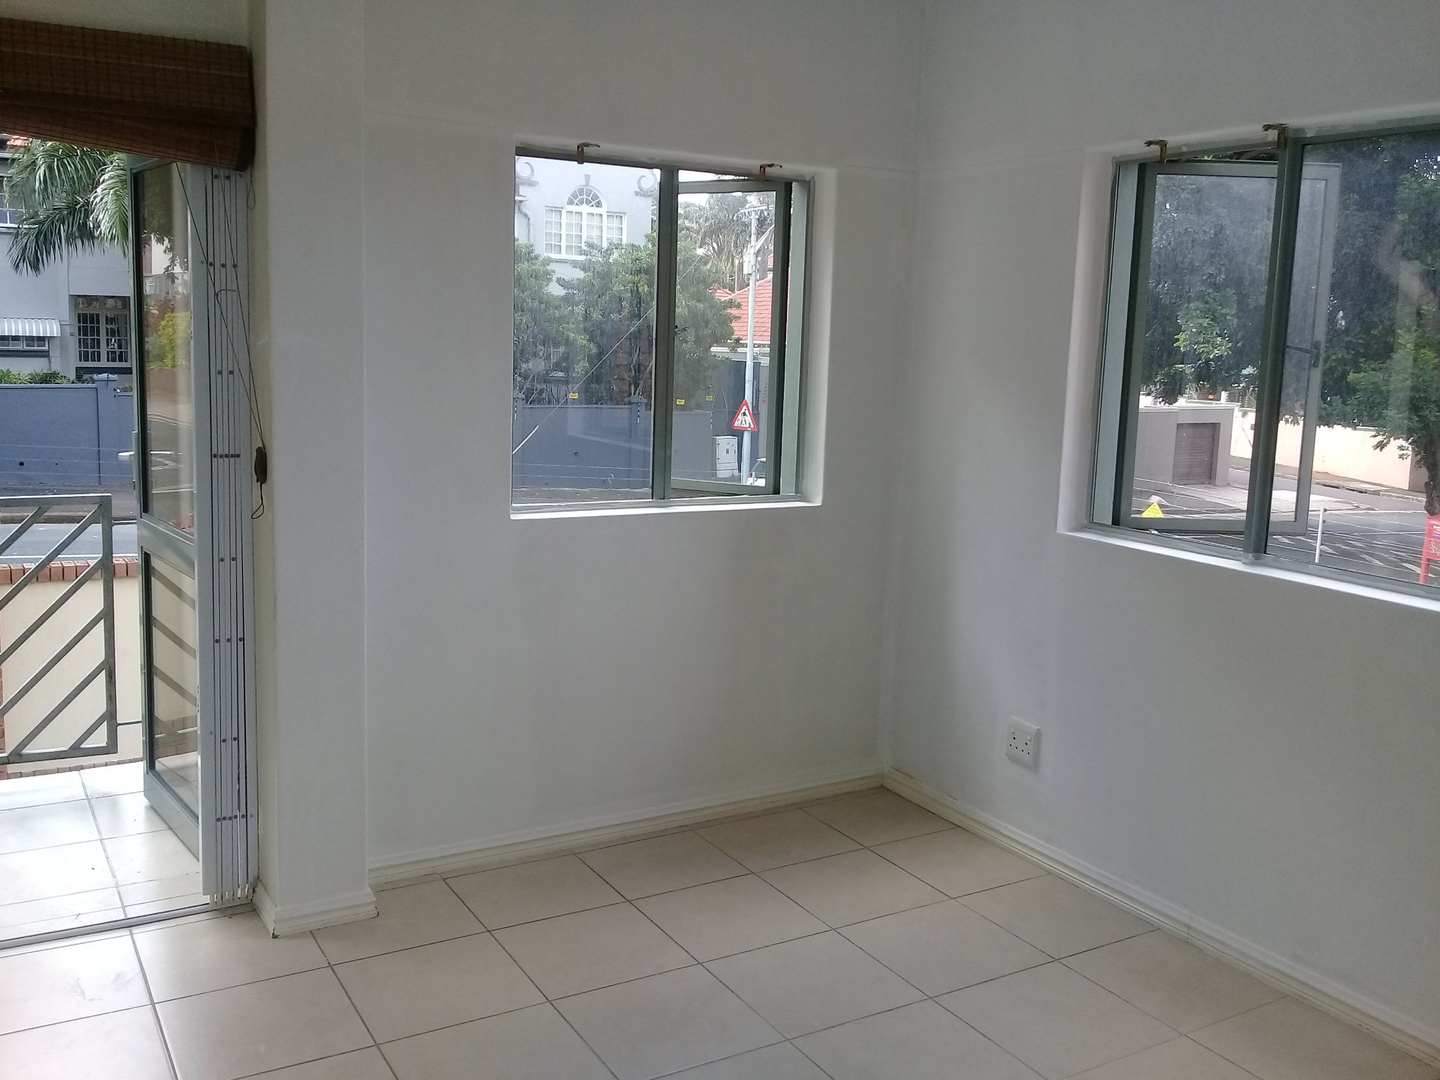 2 Bedroom Apartment for sale in Windermere 1831184 : photo#4